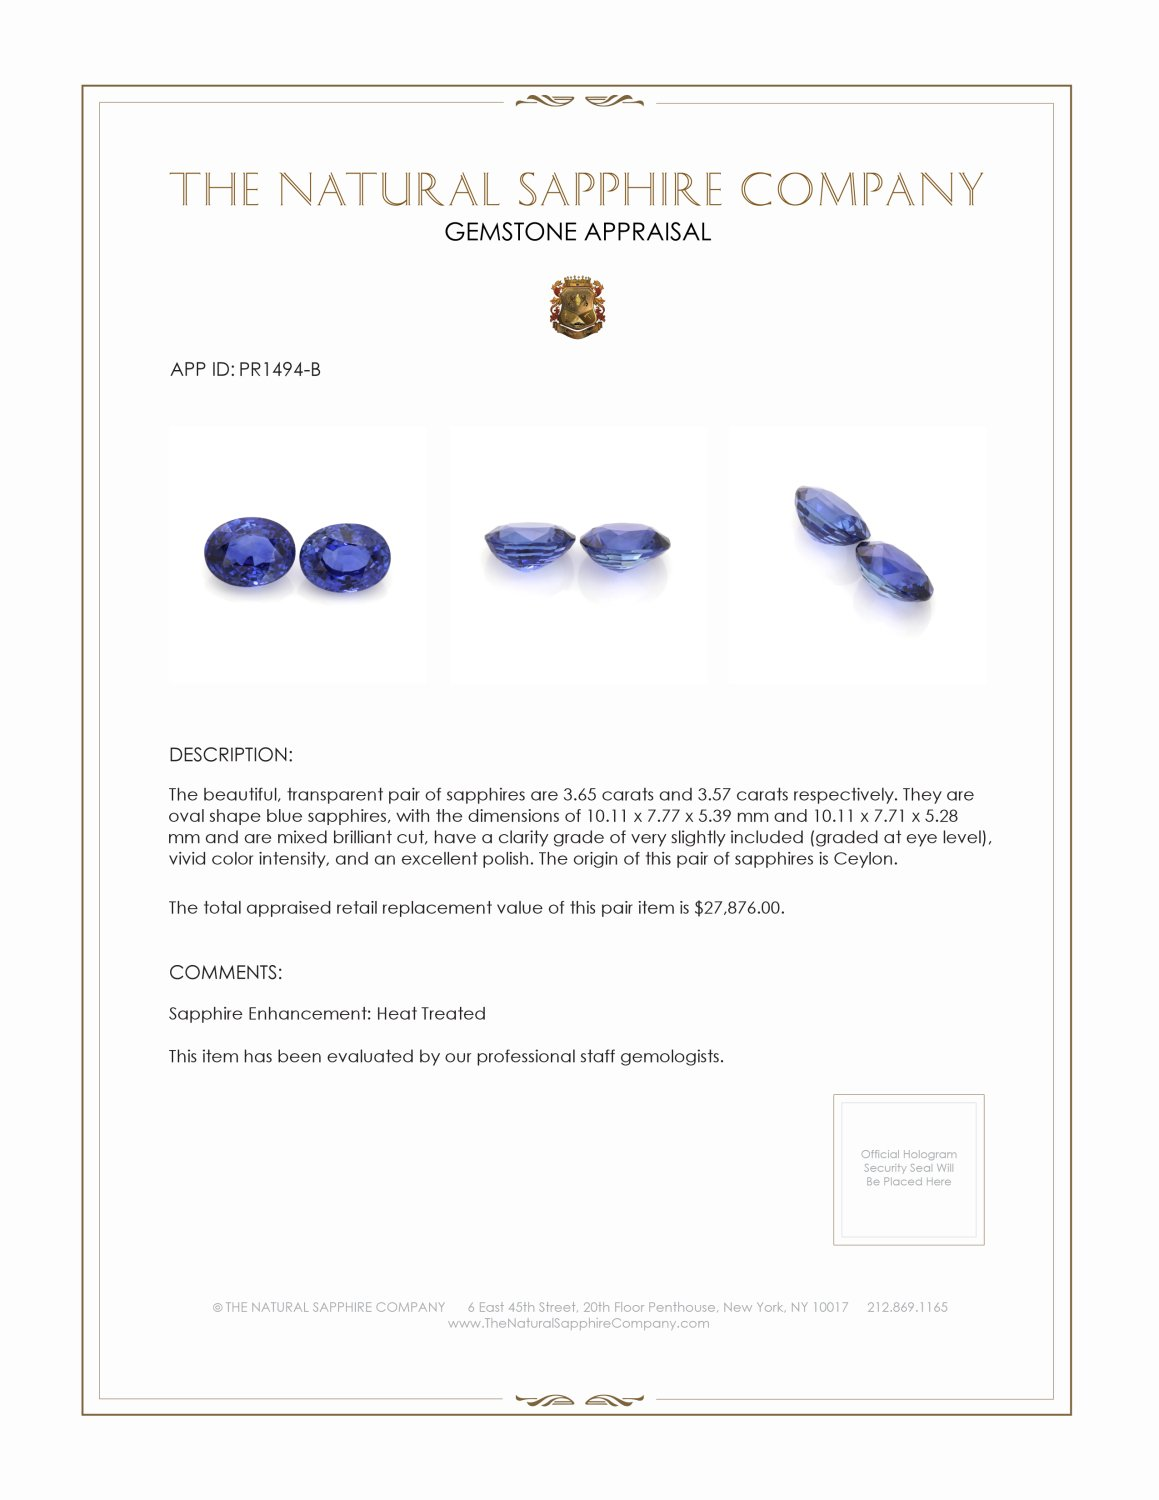 7.22ct Natural Blue Sapphire Pair PR1494-B Certification 3